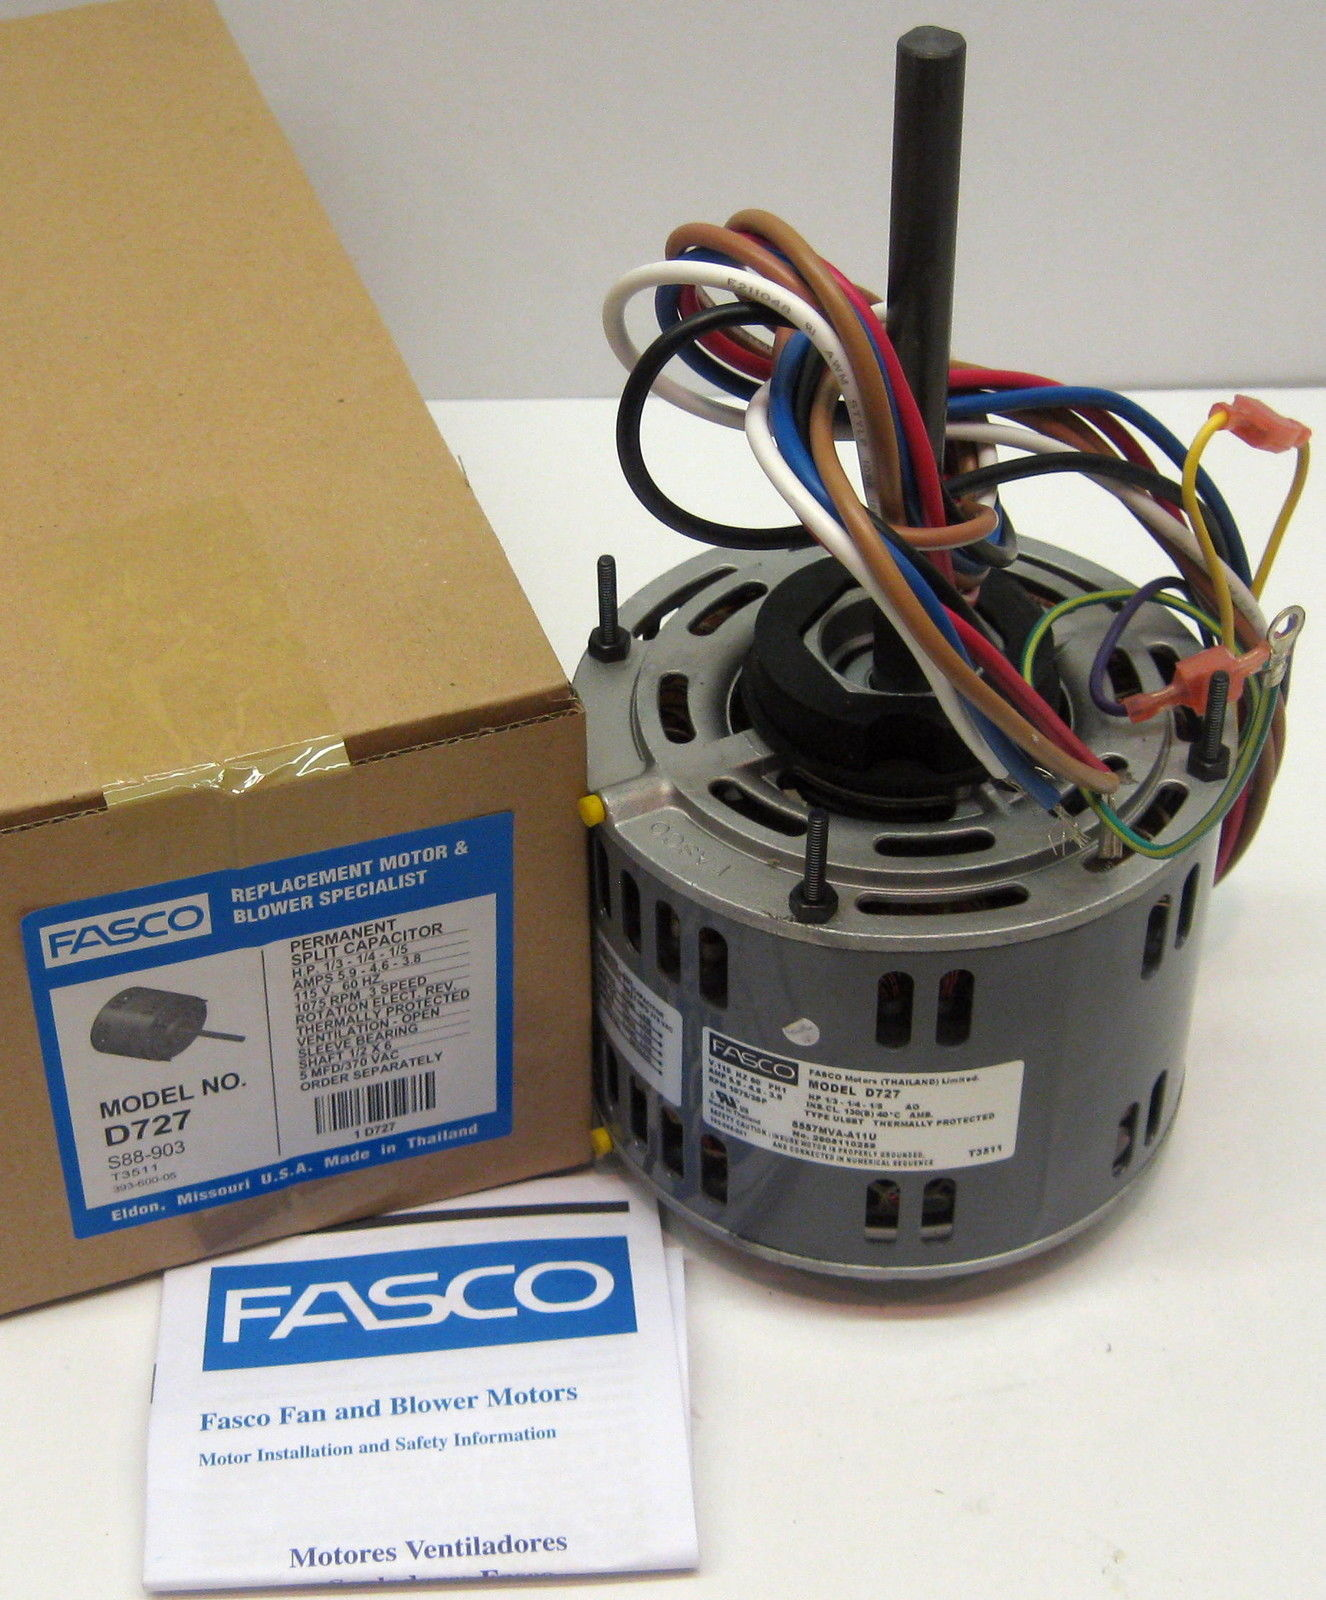 fasco d727 wiring diagram d727 fasco 1/3 hp 1075 rpm 115 v 3 speed furnace blower ... fasco wiring diagram #13